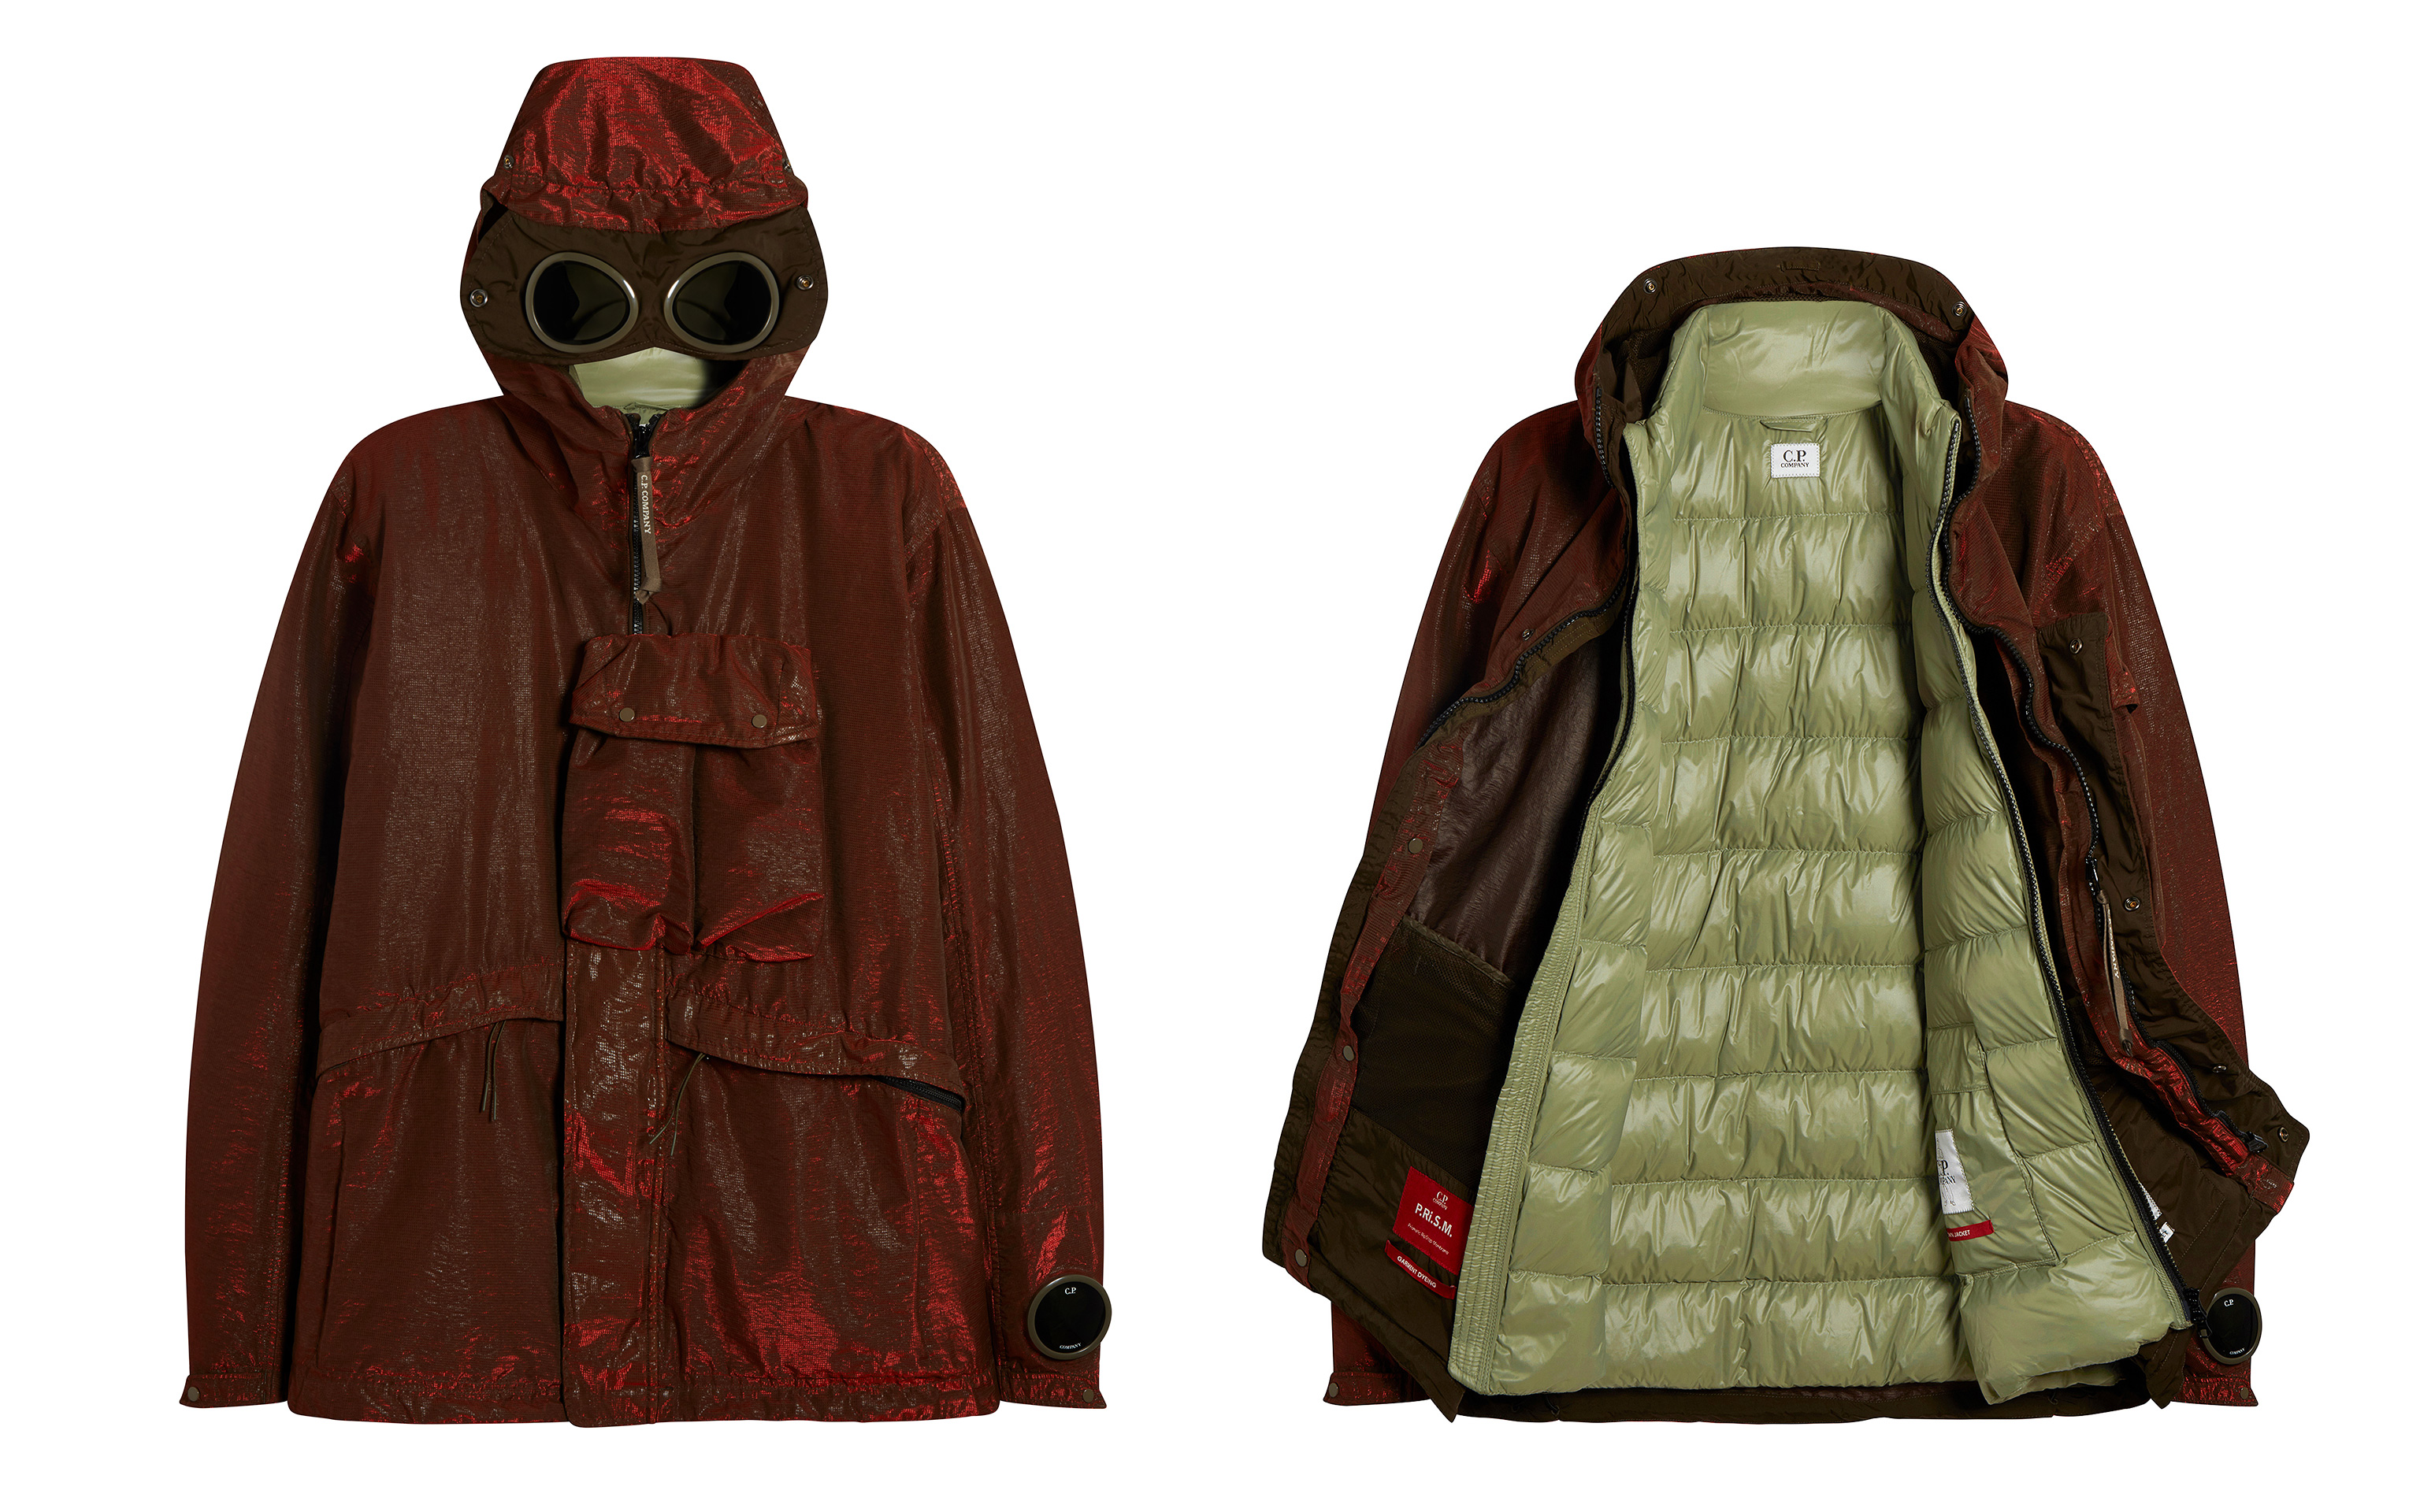 Picture of two Burgundy colour C.P. Company raincoats one open and the other closed, both on white background